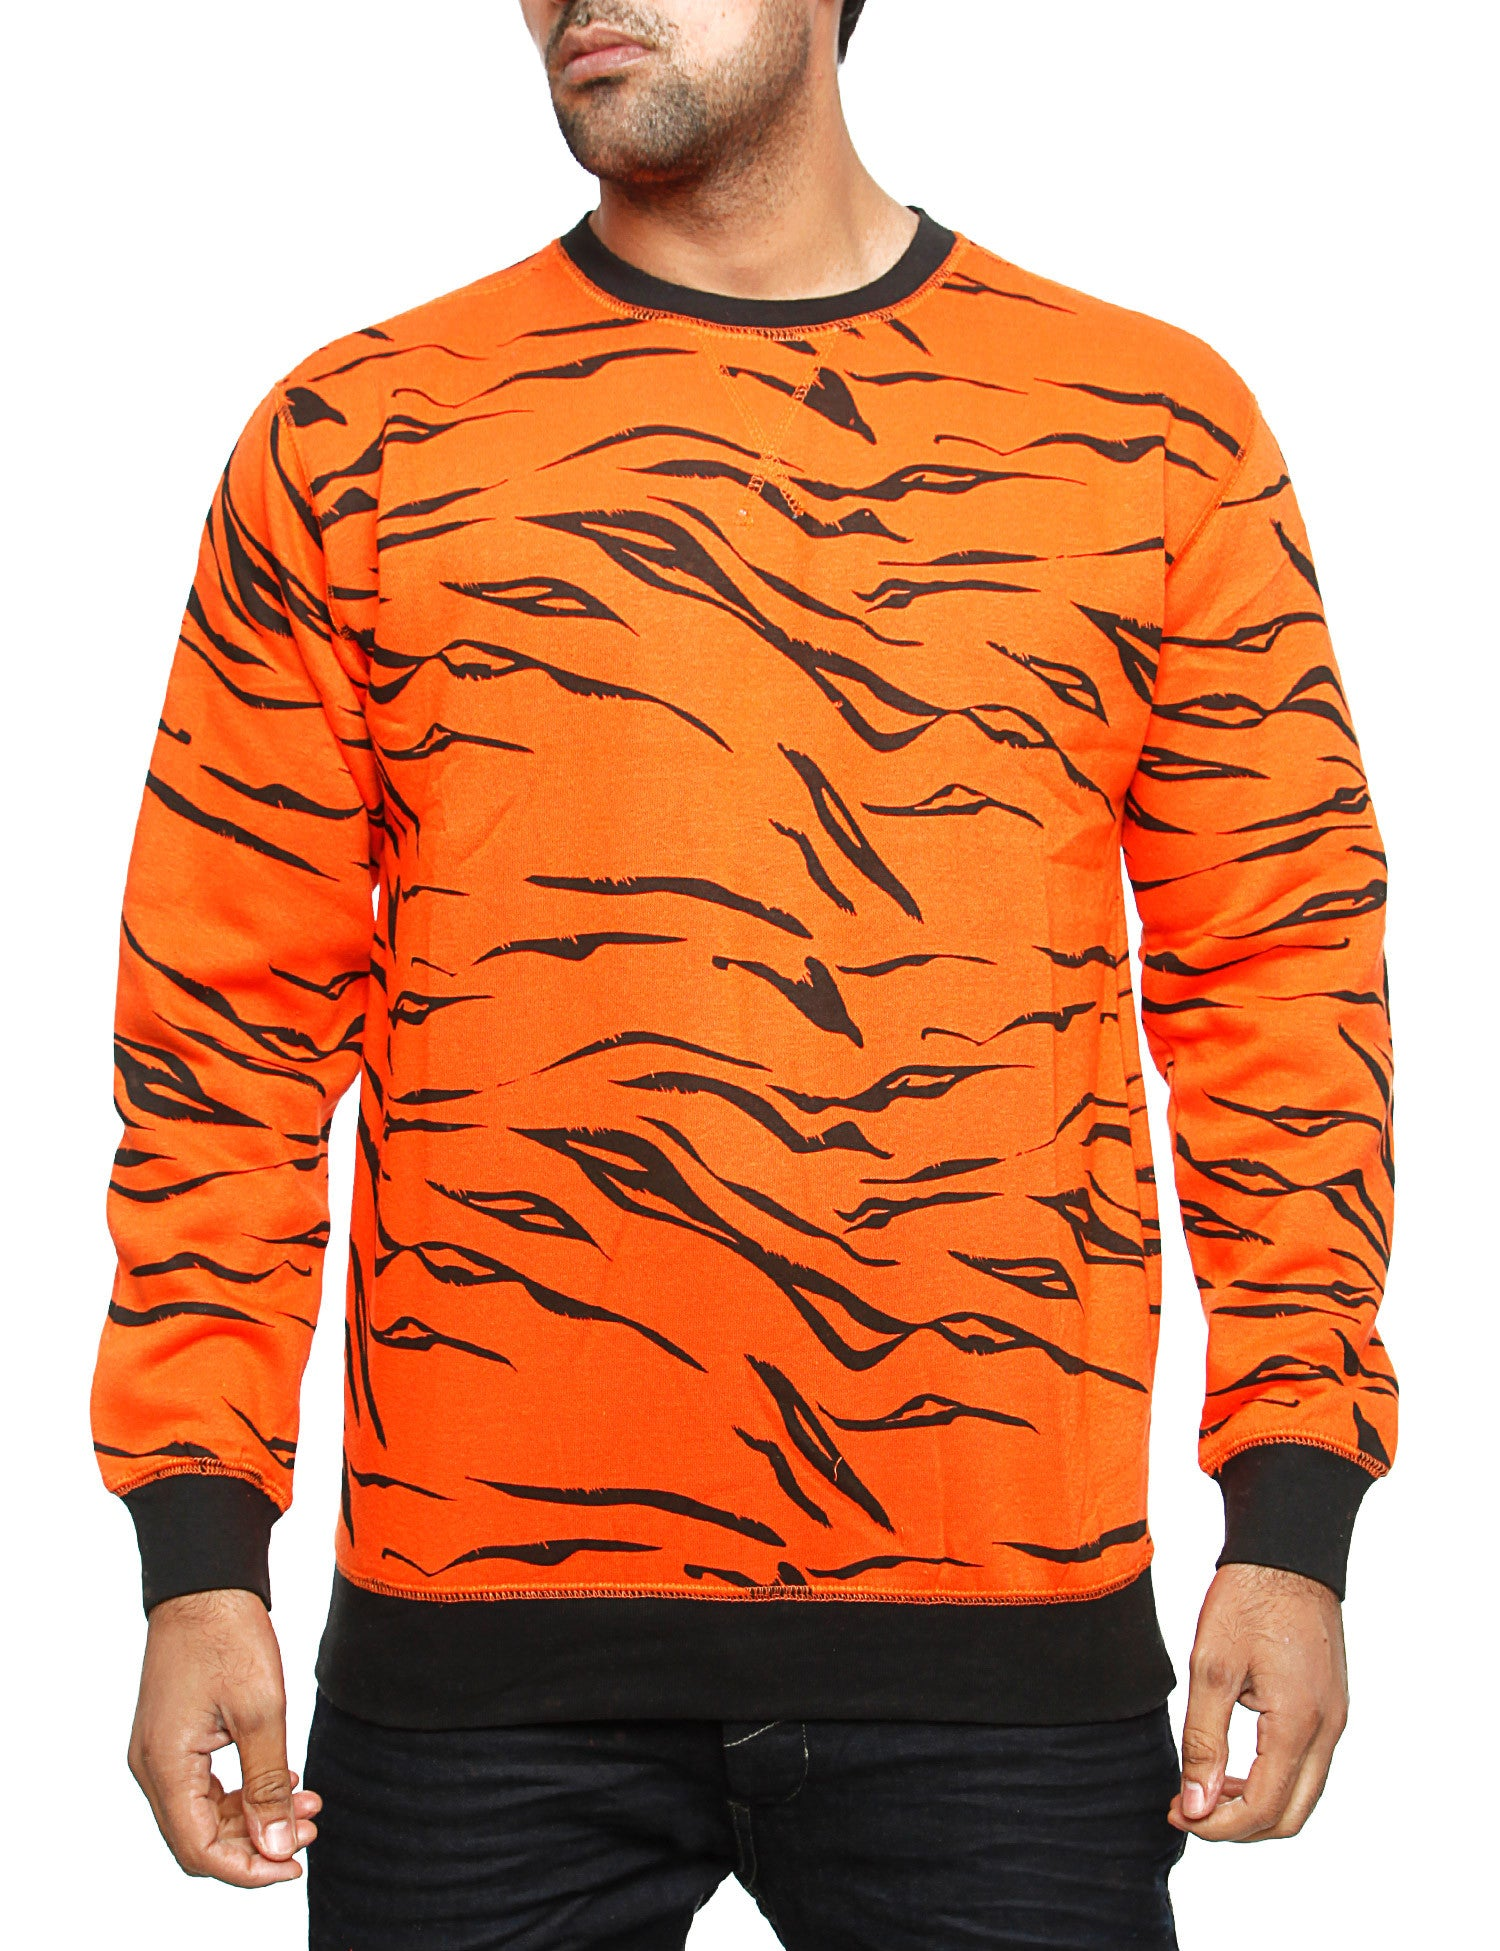 Imperious Tiger Print Crewneck CS12 Orange